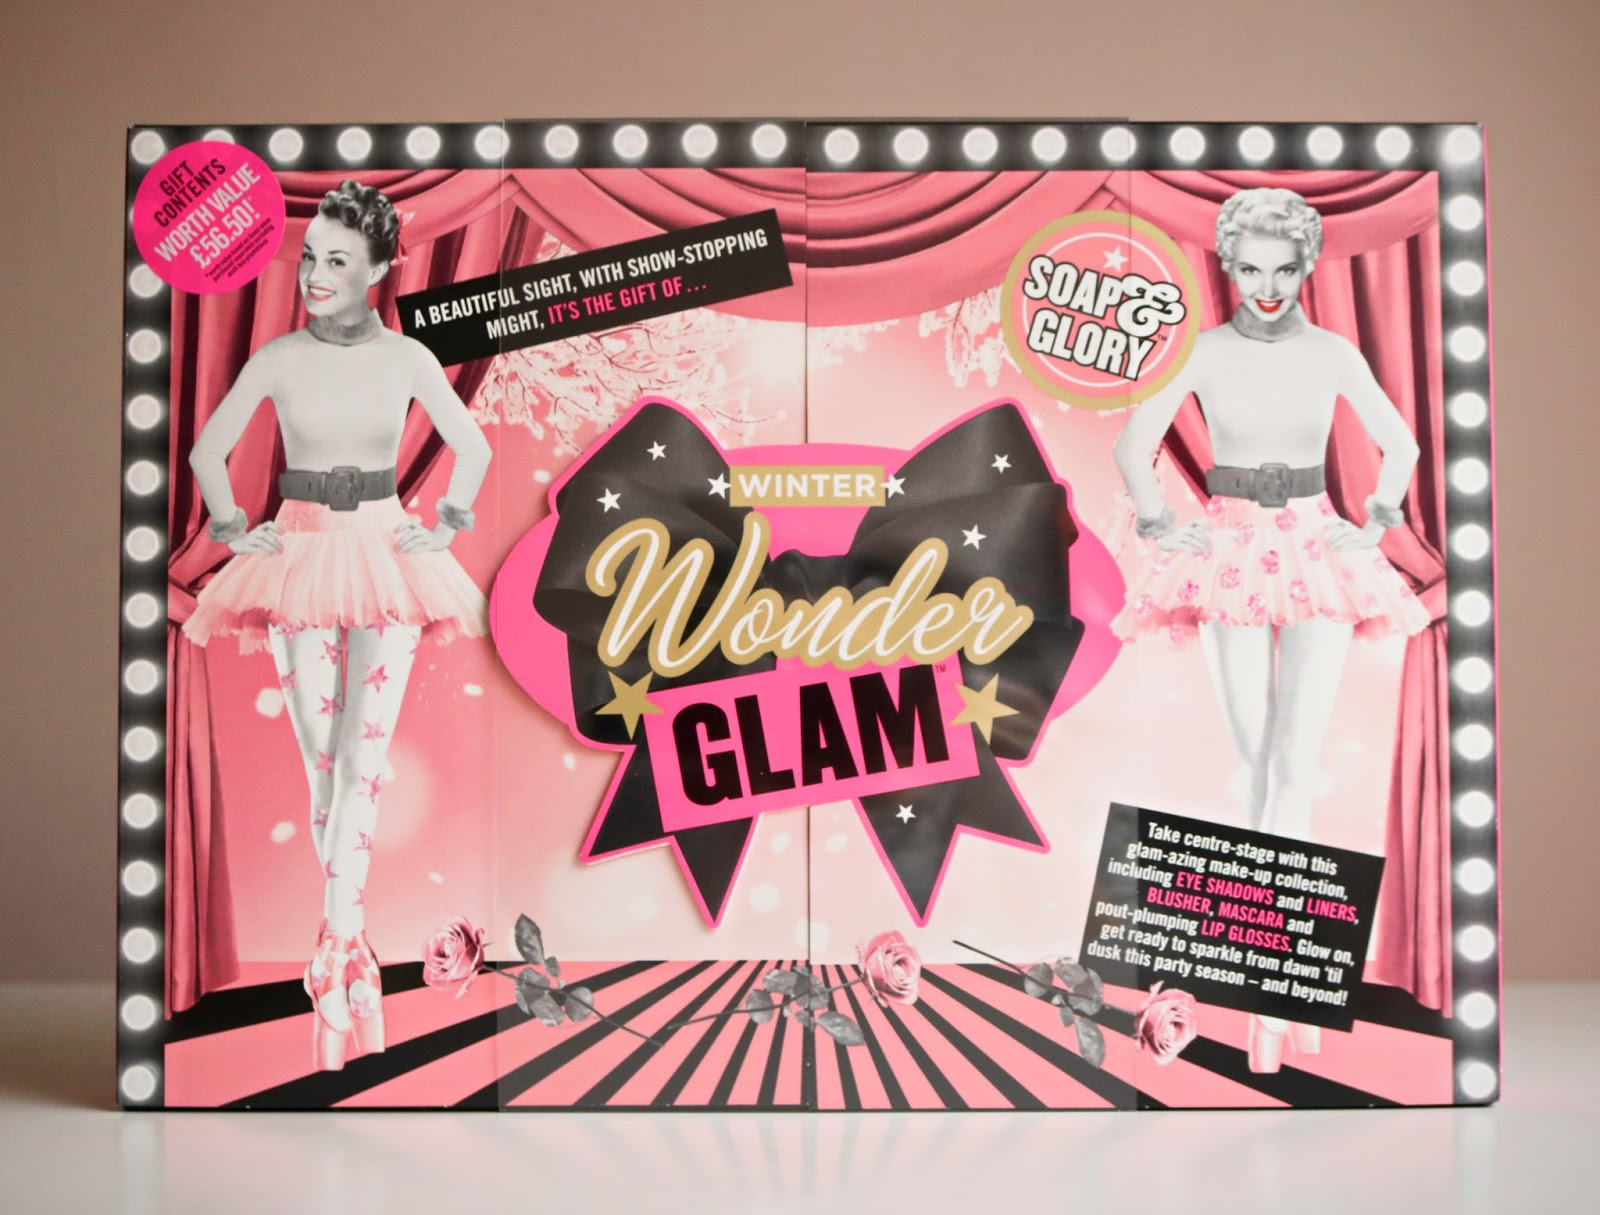 the stunning winter wonder glam gift set by soap glory is available from boots now at an incredible jaw dropping price